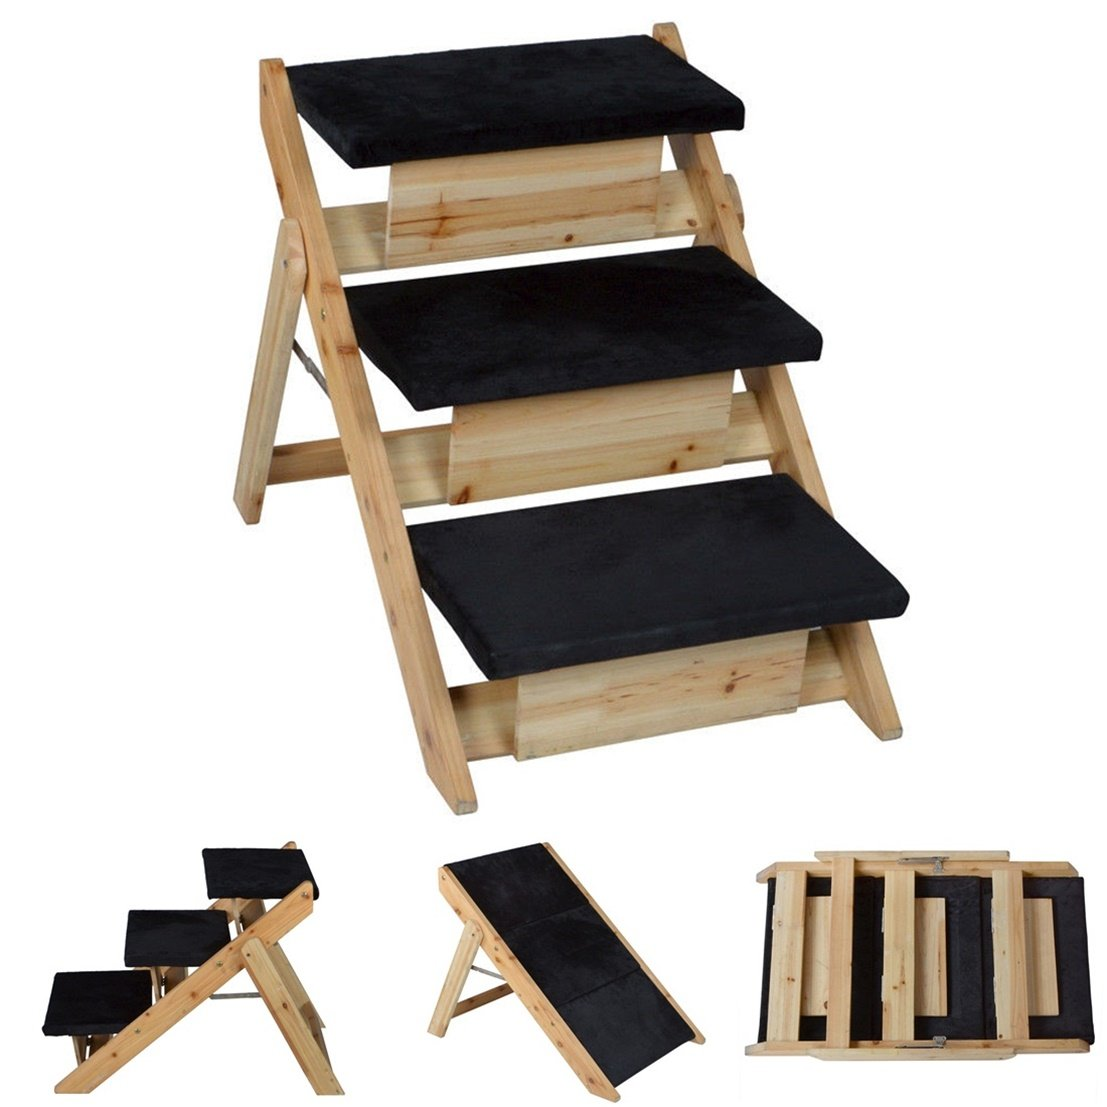 OOS 1 Set Leading Popular 2-in-1 Pet Stairs Ramp Portable Folding Lightweight